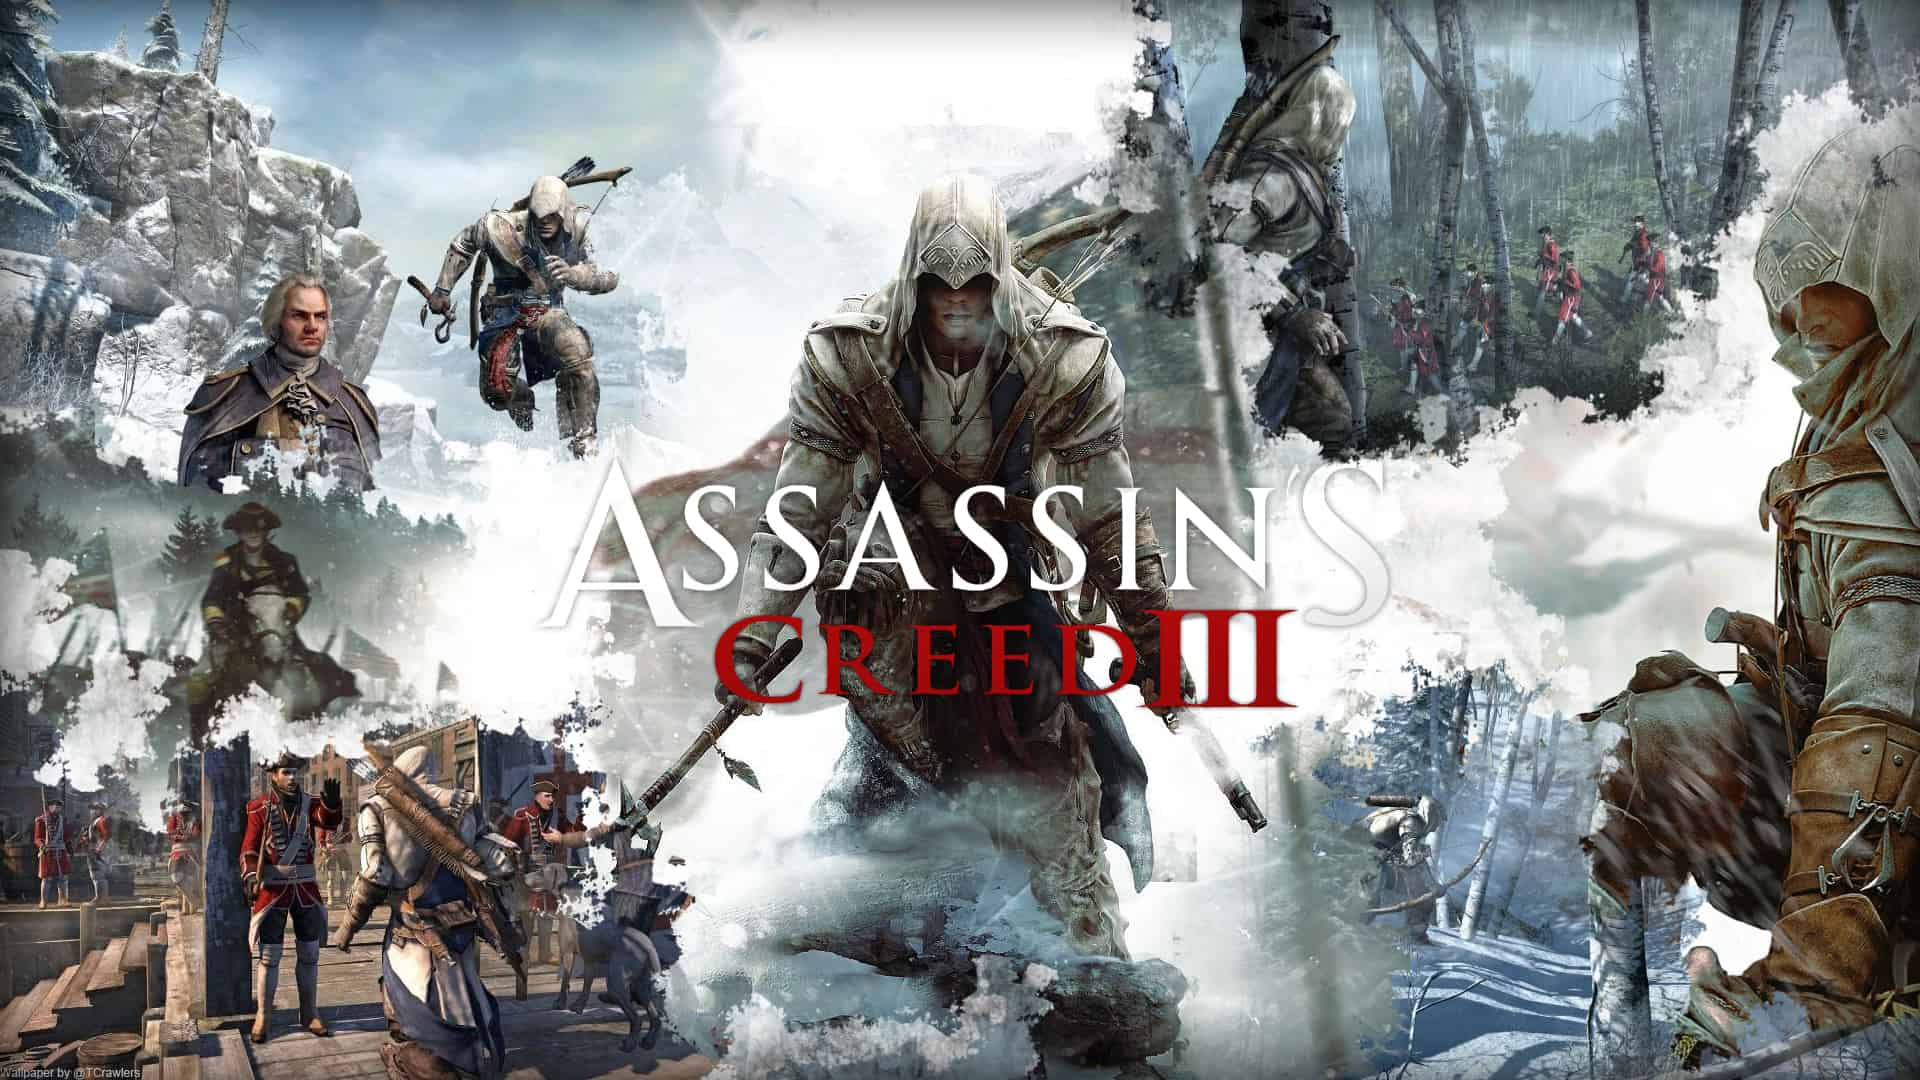 Assassin's creed 3 mp3 download assassin's creed 3 soundtracks.